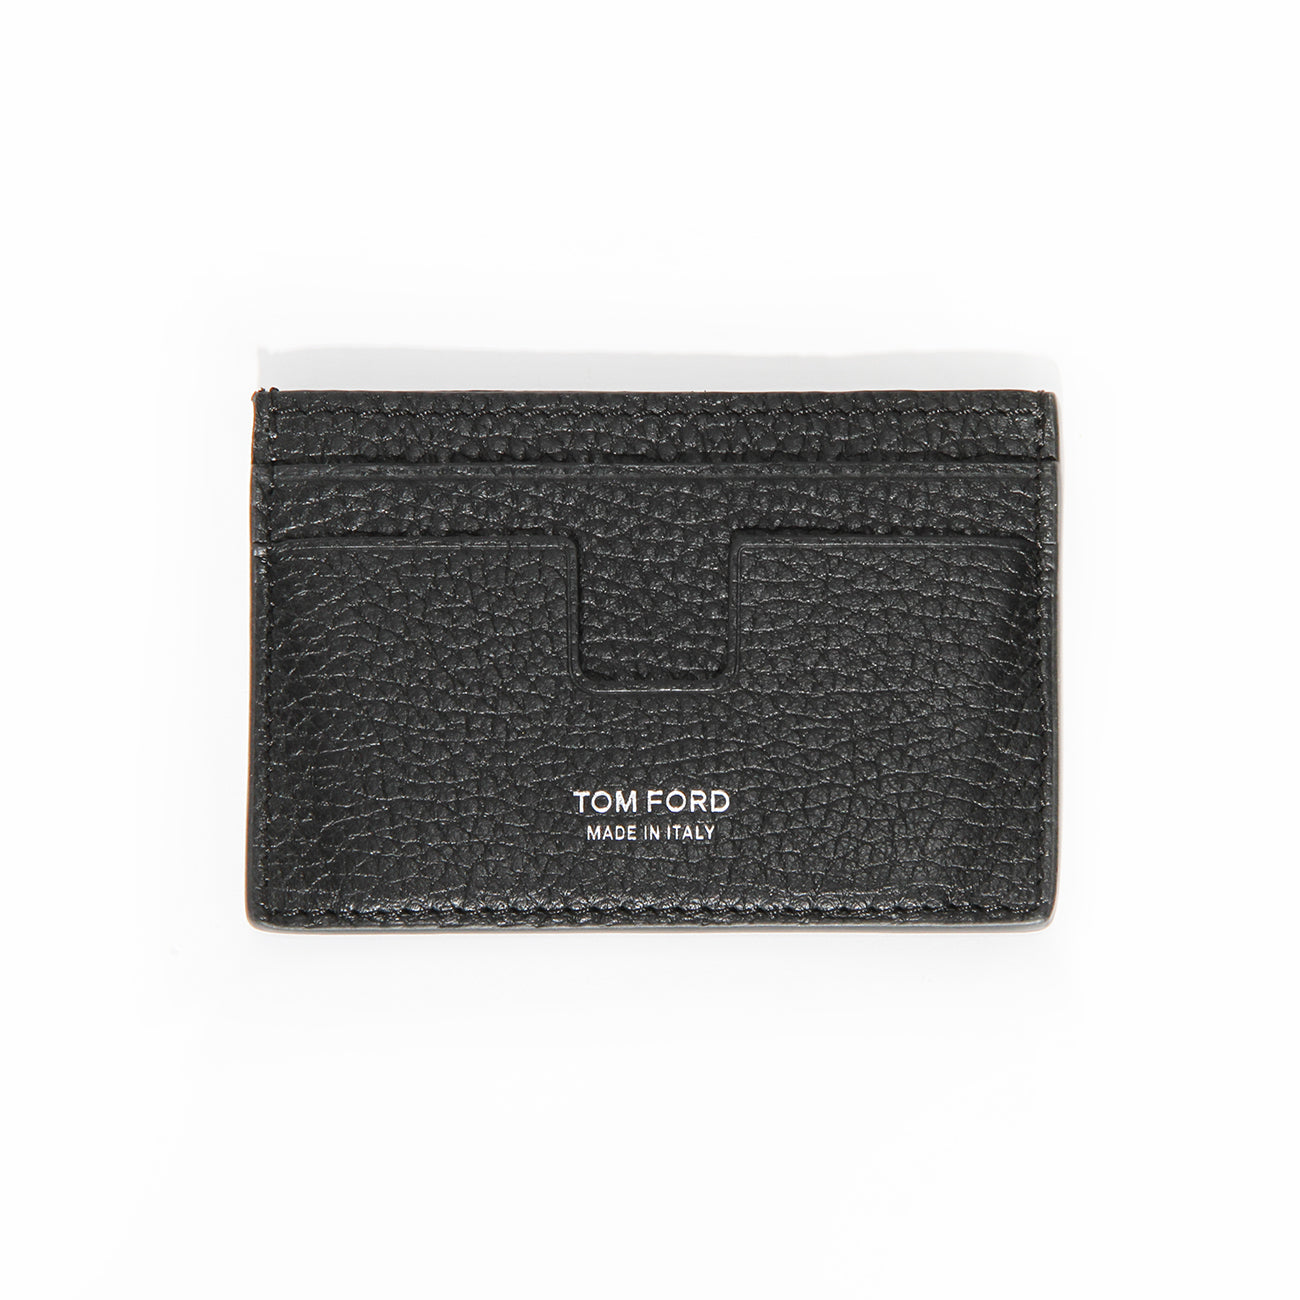 Tom Ford Black Leather Classic Cardholder